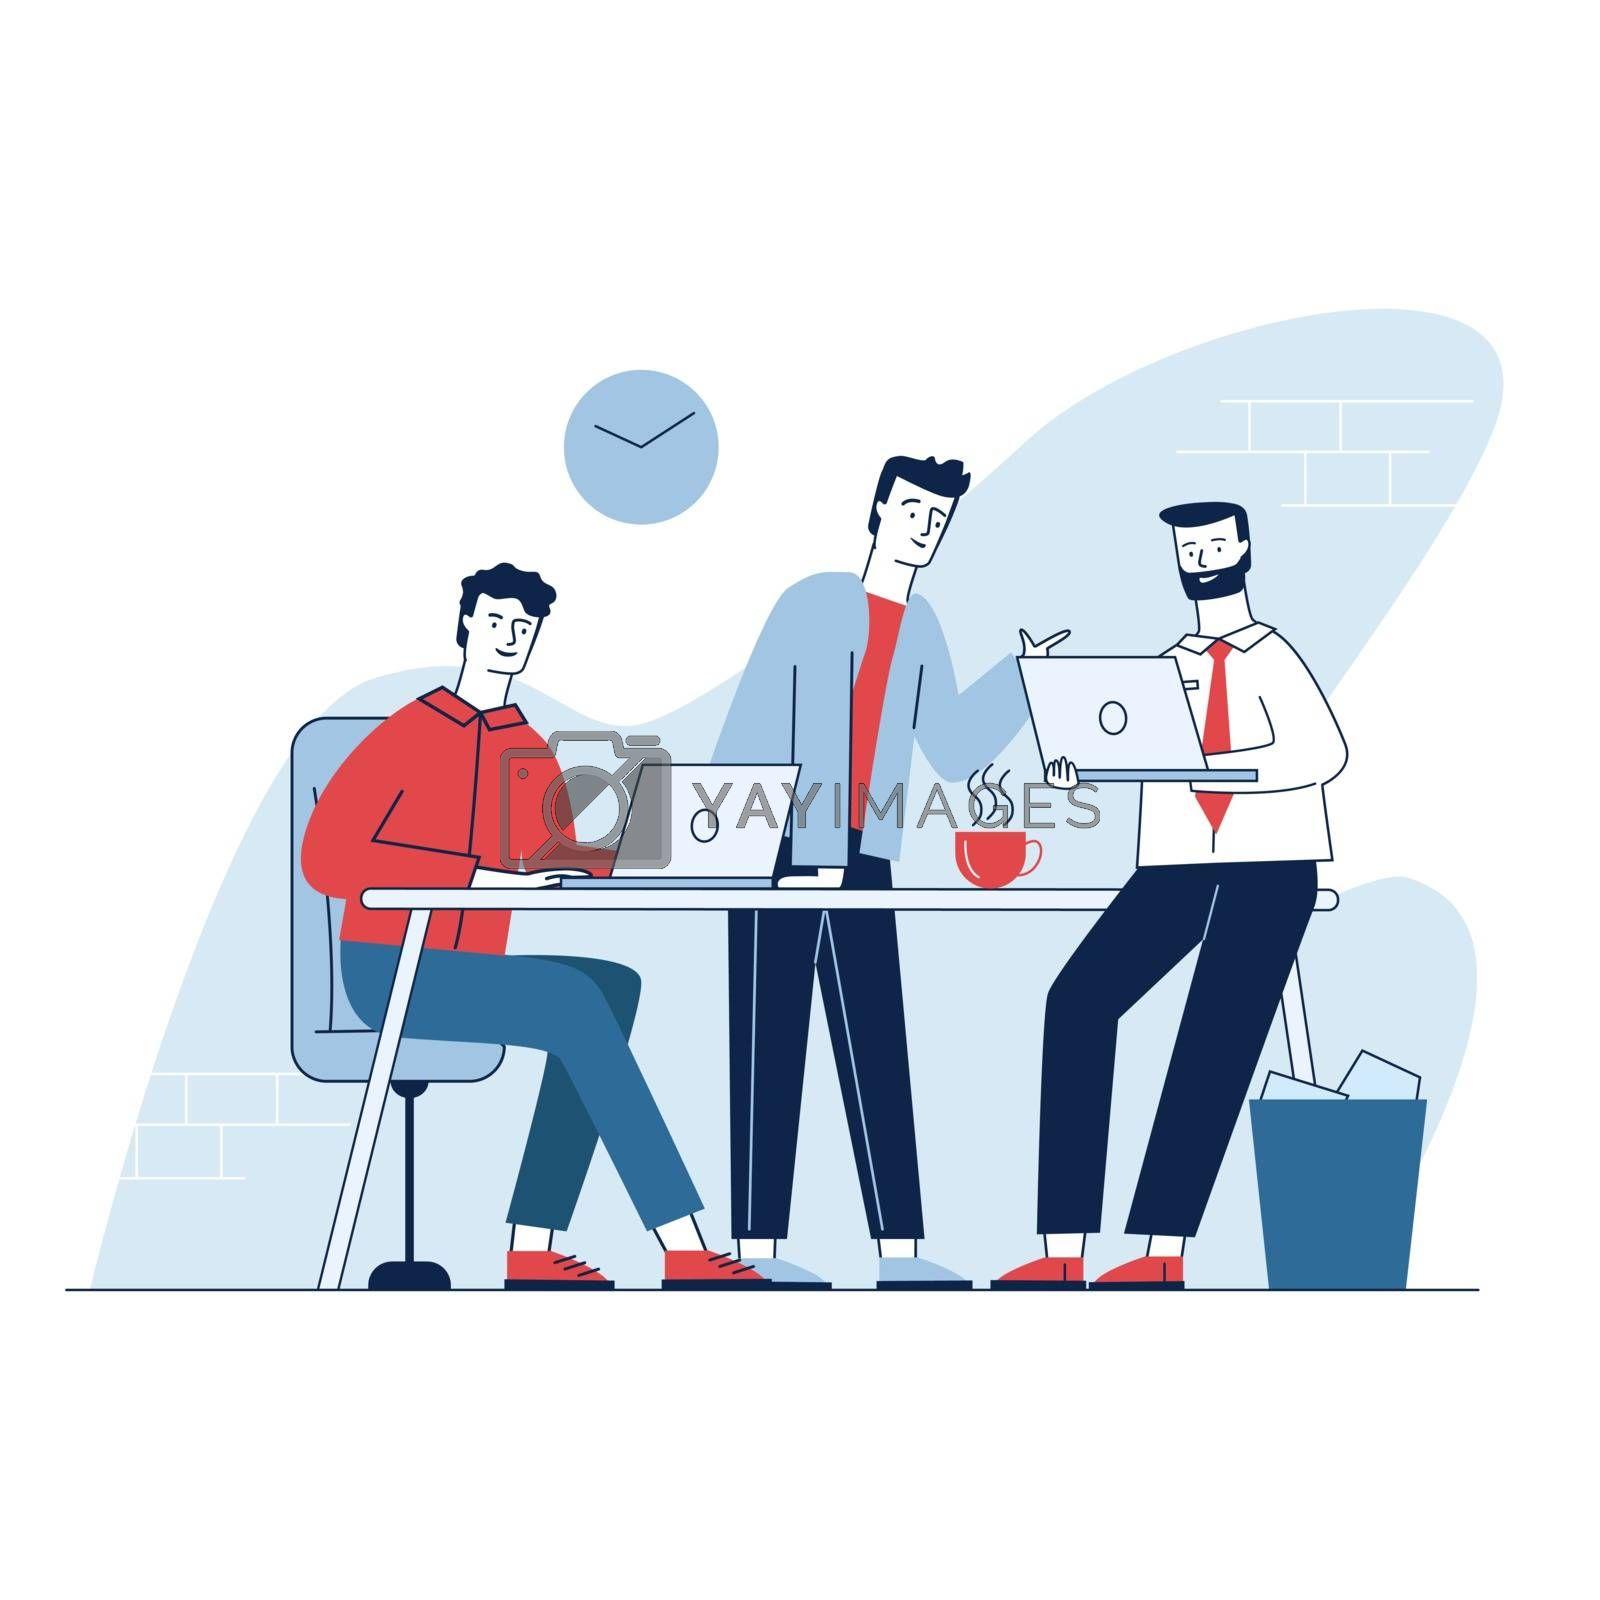 Three man having business meeting in office. Employees discussing work project flat vector illustration. Teamwork, discussion, conference concept for banner, website design or landing web page